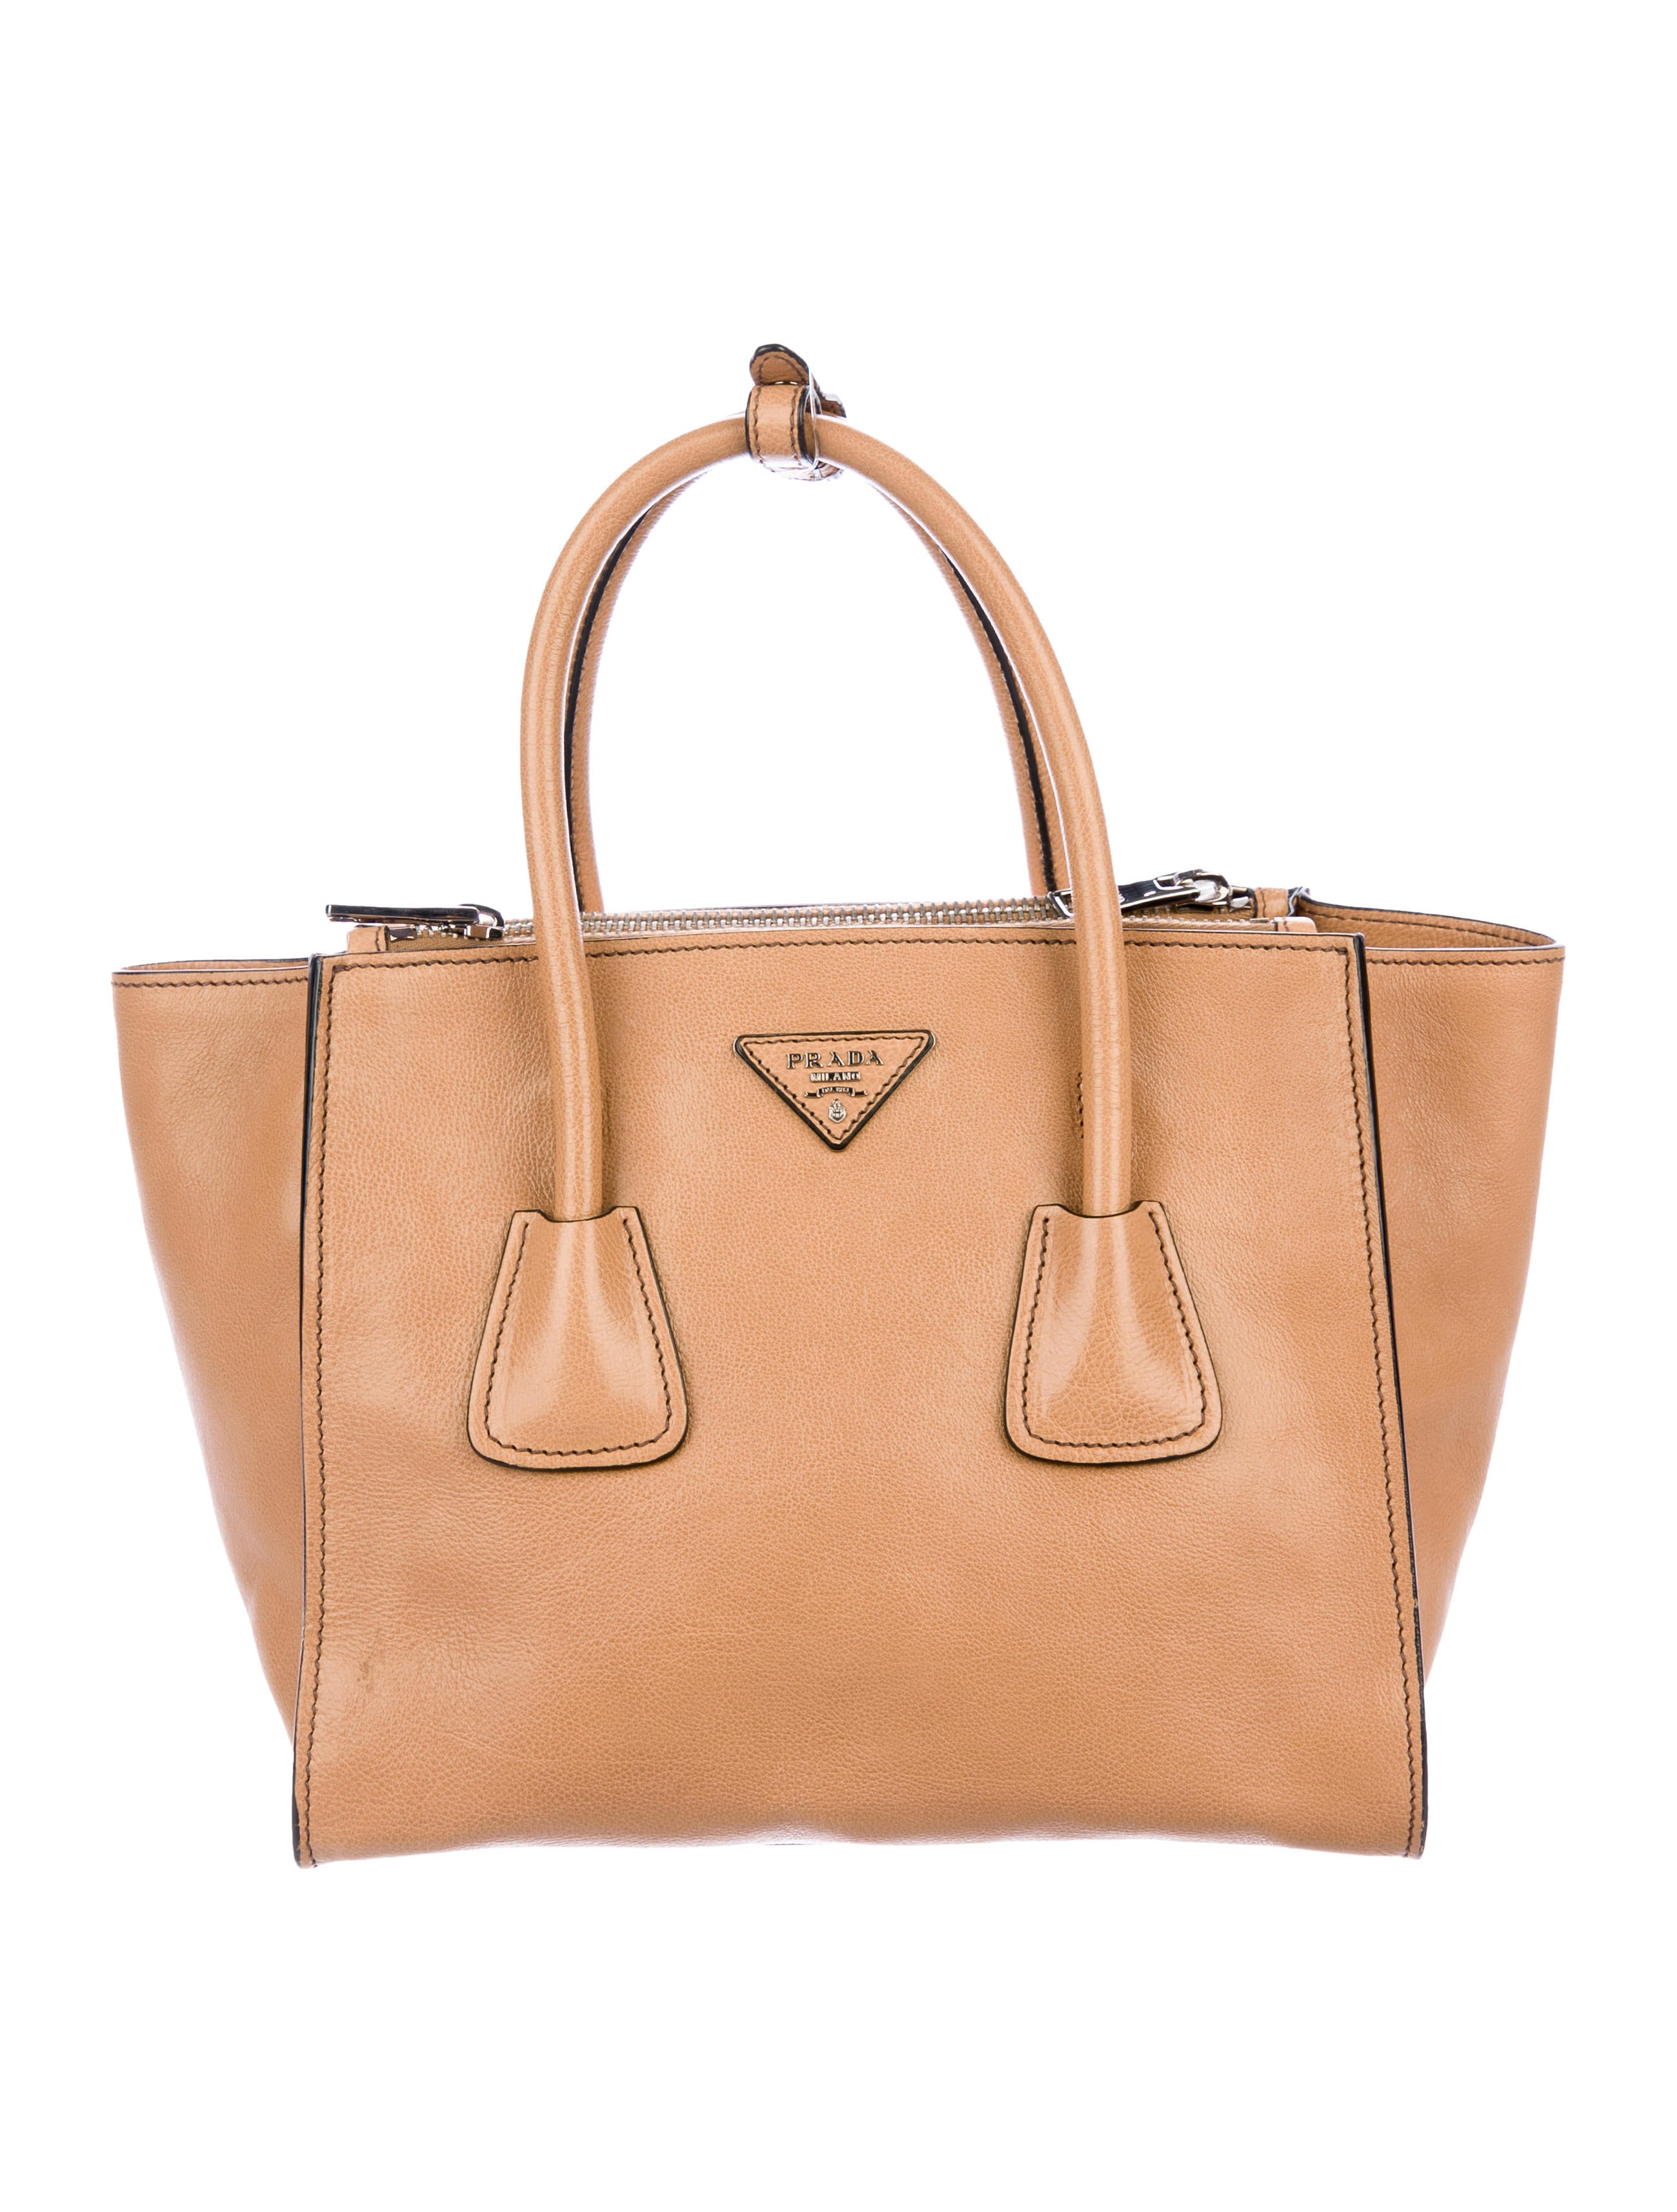 a683e1044eba46 Prada Small Glace Calf Twin Pocket Tote - Handbags - PRA280945 | The ...